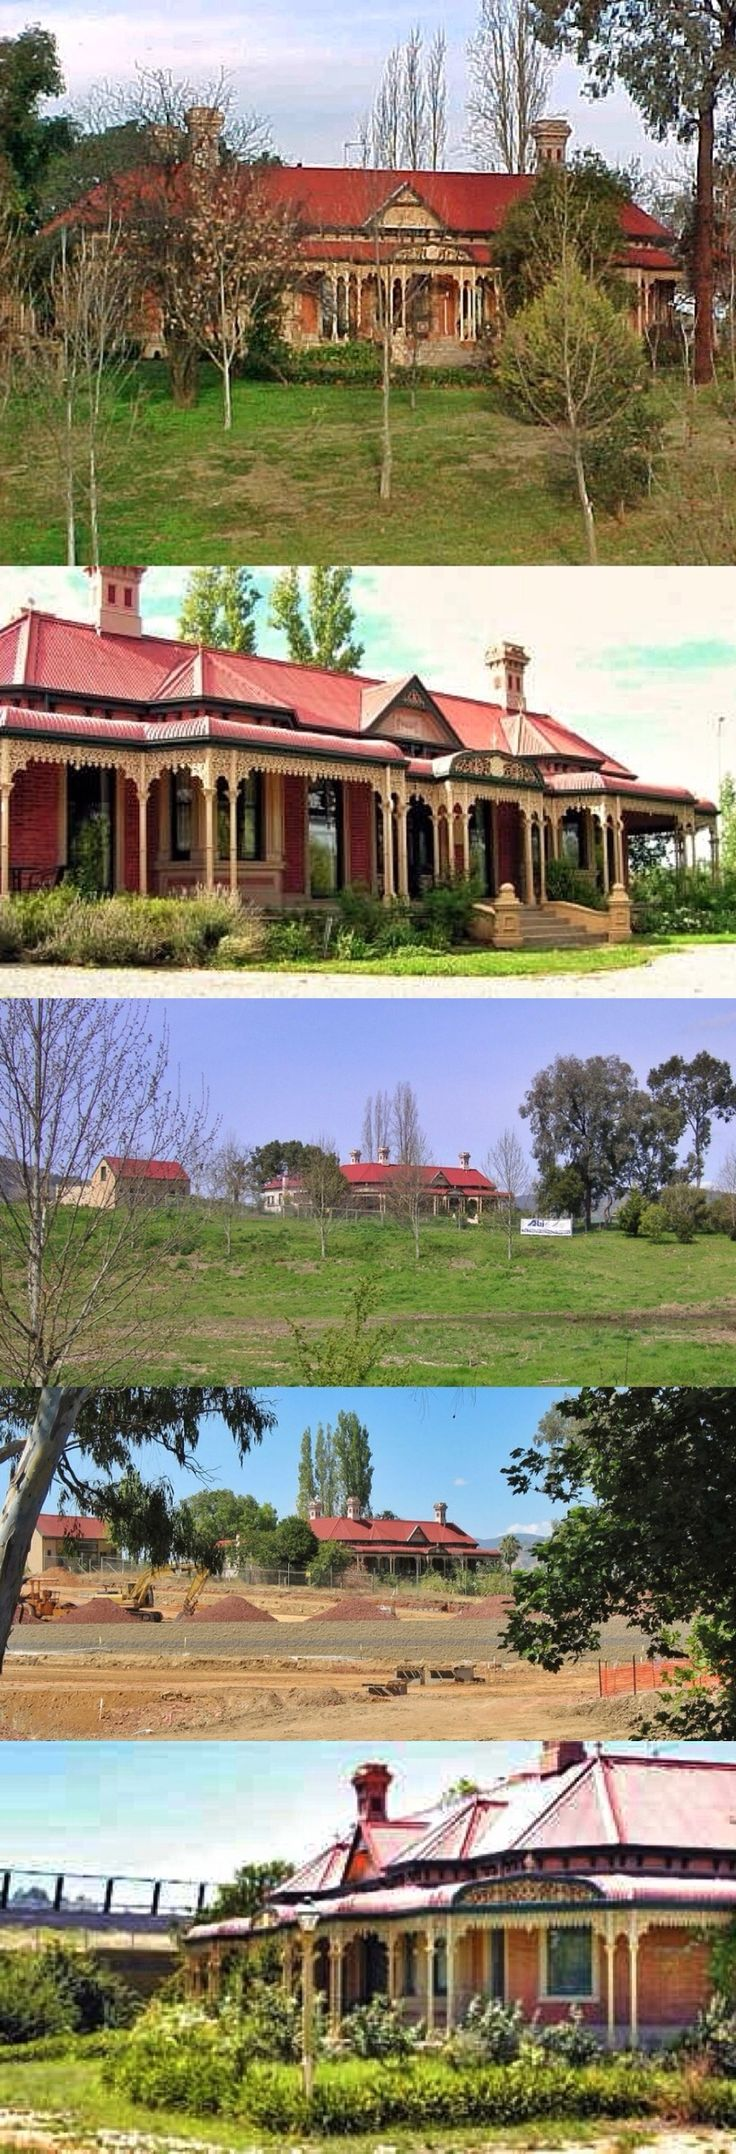 Cambourne Homestead, Wodonga, was built by 1903 for Rebecca S. Carkeek. It is situated on the original Wodonga run which was established in 1836, and gave the town of Wodonga its name. After subdivision the Cambourne property was developed on one of the allotments; it went through a series of owners until purchased in 1899 by Rebecca Carkeek, wife of William Carkeek, publican of Wodonga and shire councillor. The prolific local architects Gordon and Gordon have been credited with the…